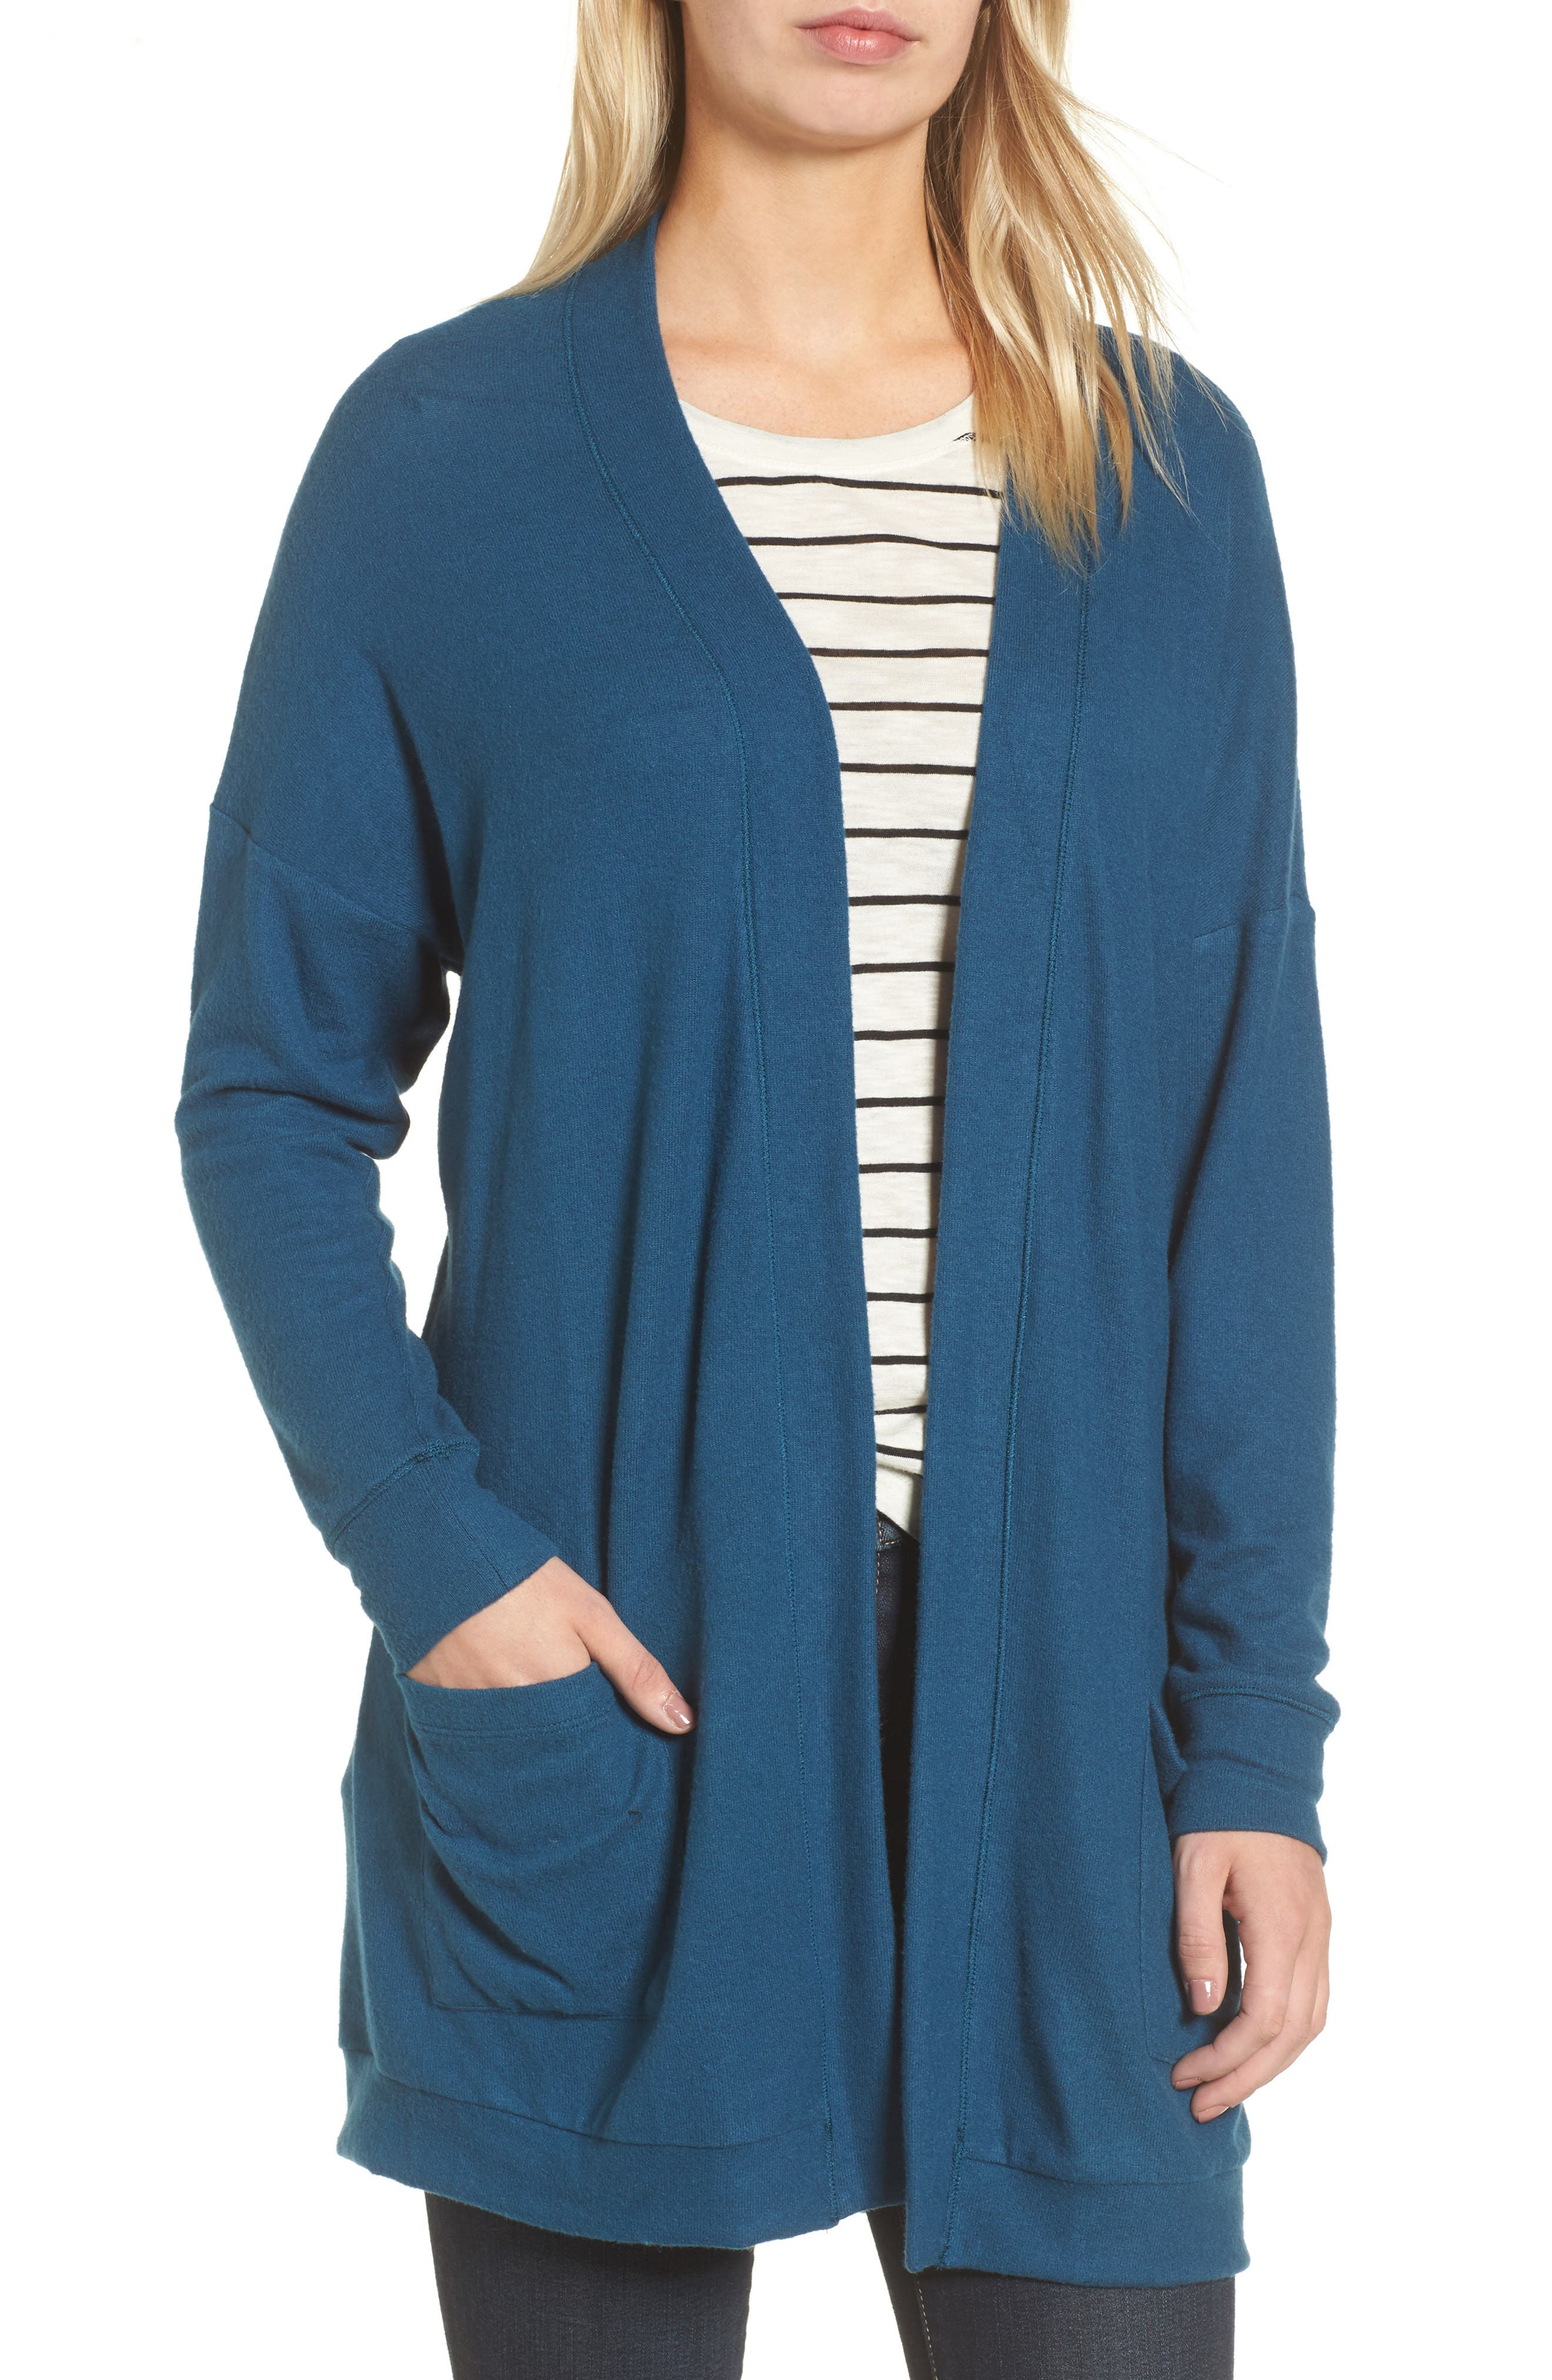 Rib Knit Cardigan,                             Main thumbnail 1, color,                             Blue Ceramic